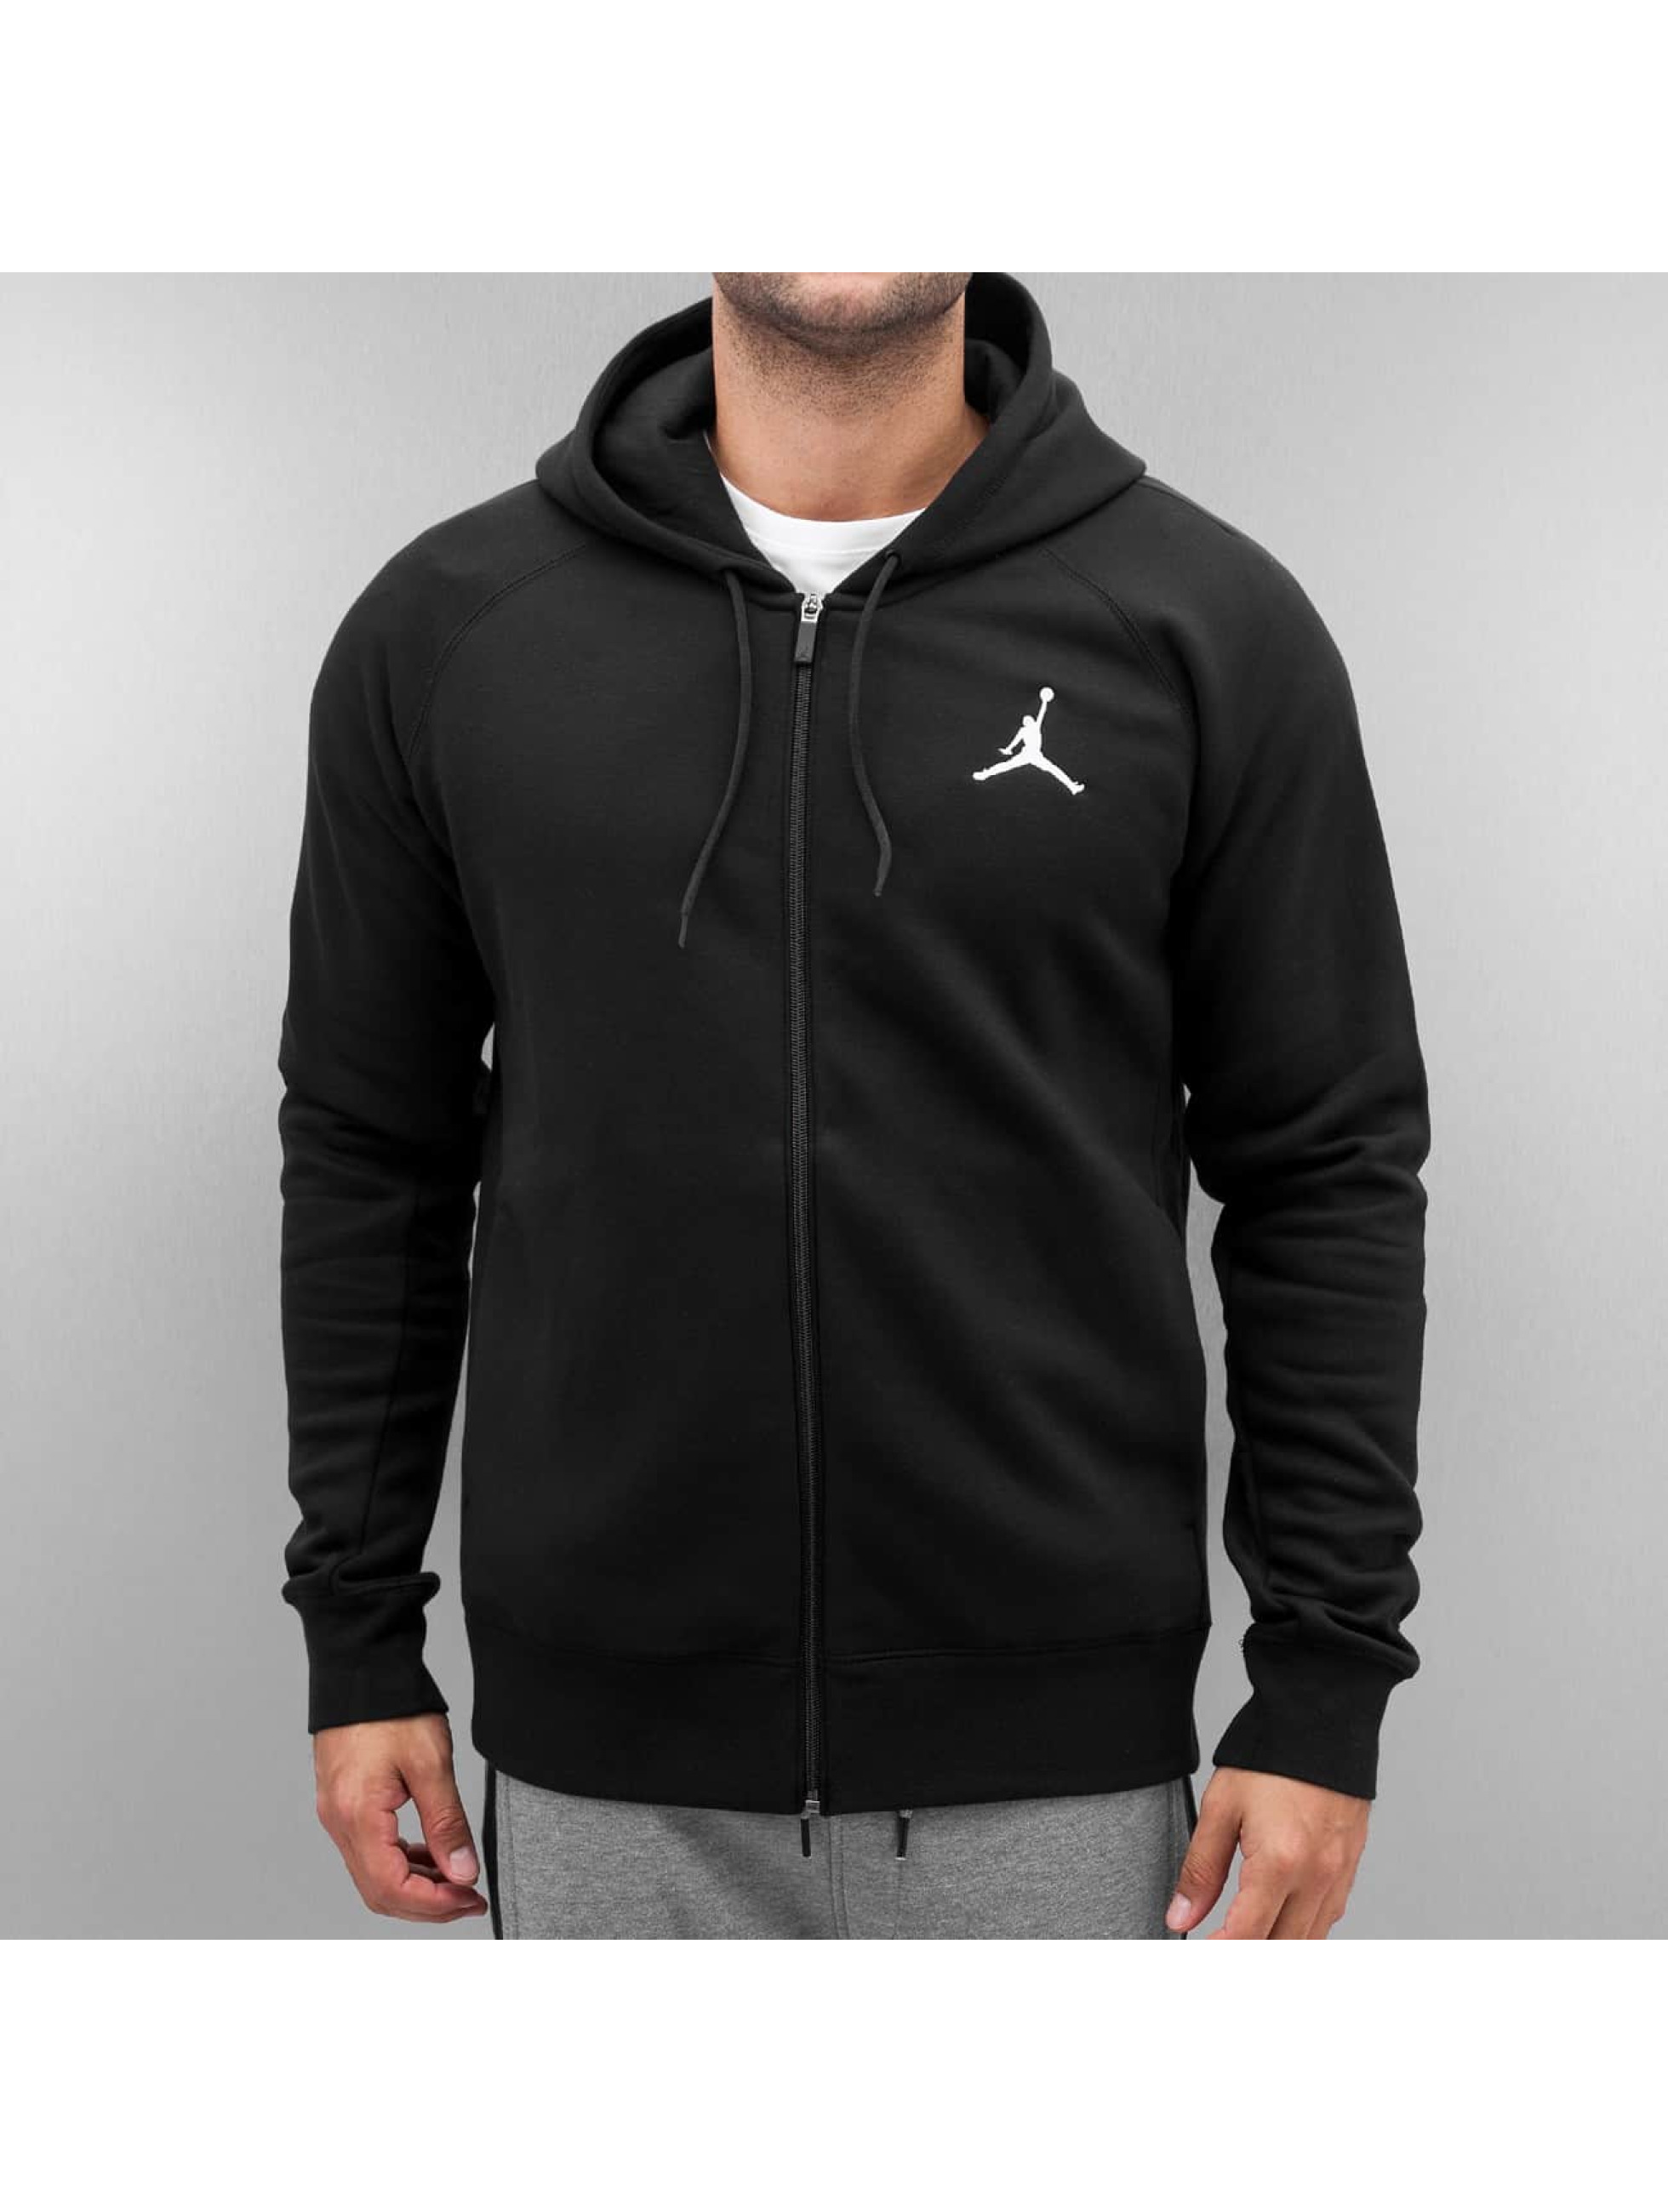 Jordan Zip Hoodie Flight black